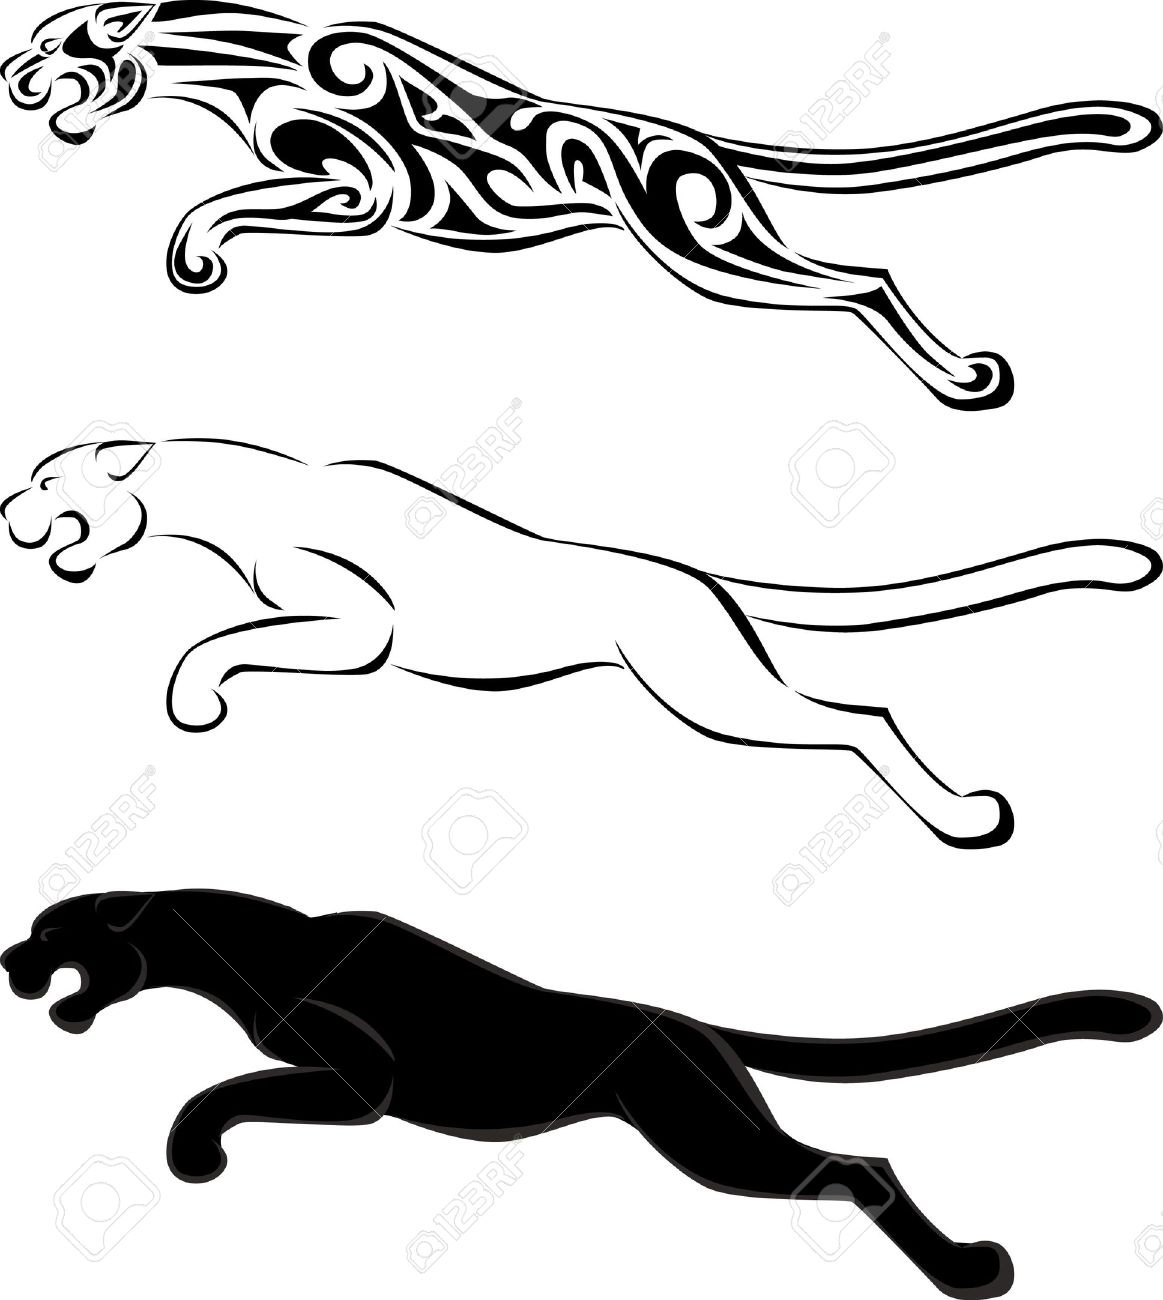 27bc58d2e0bf0 Jaguar Tribal Tattoo And Silhouette Royalty Free Cliparts, Vectors ...